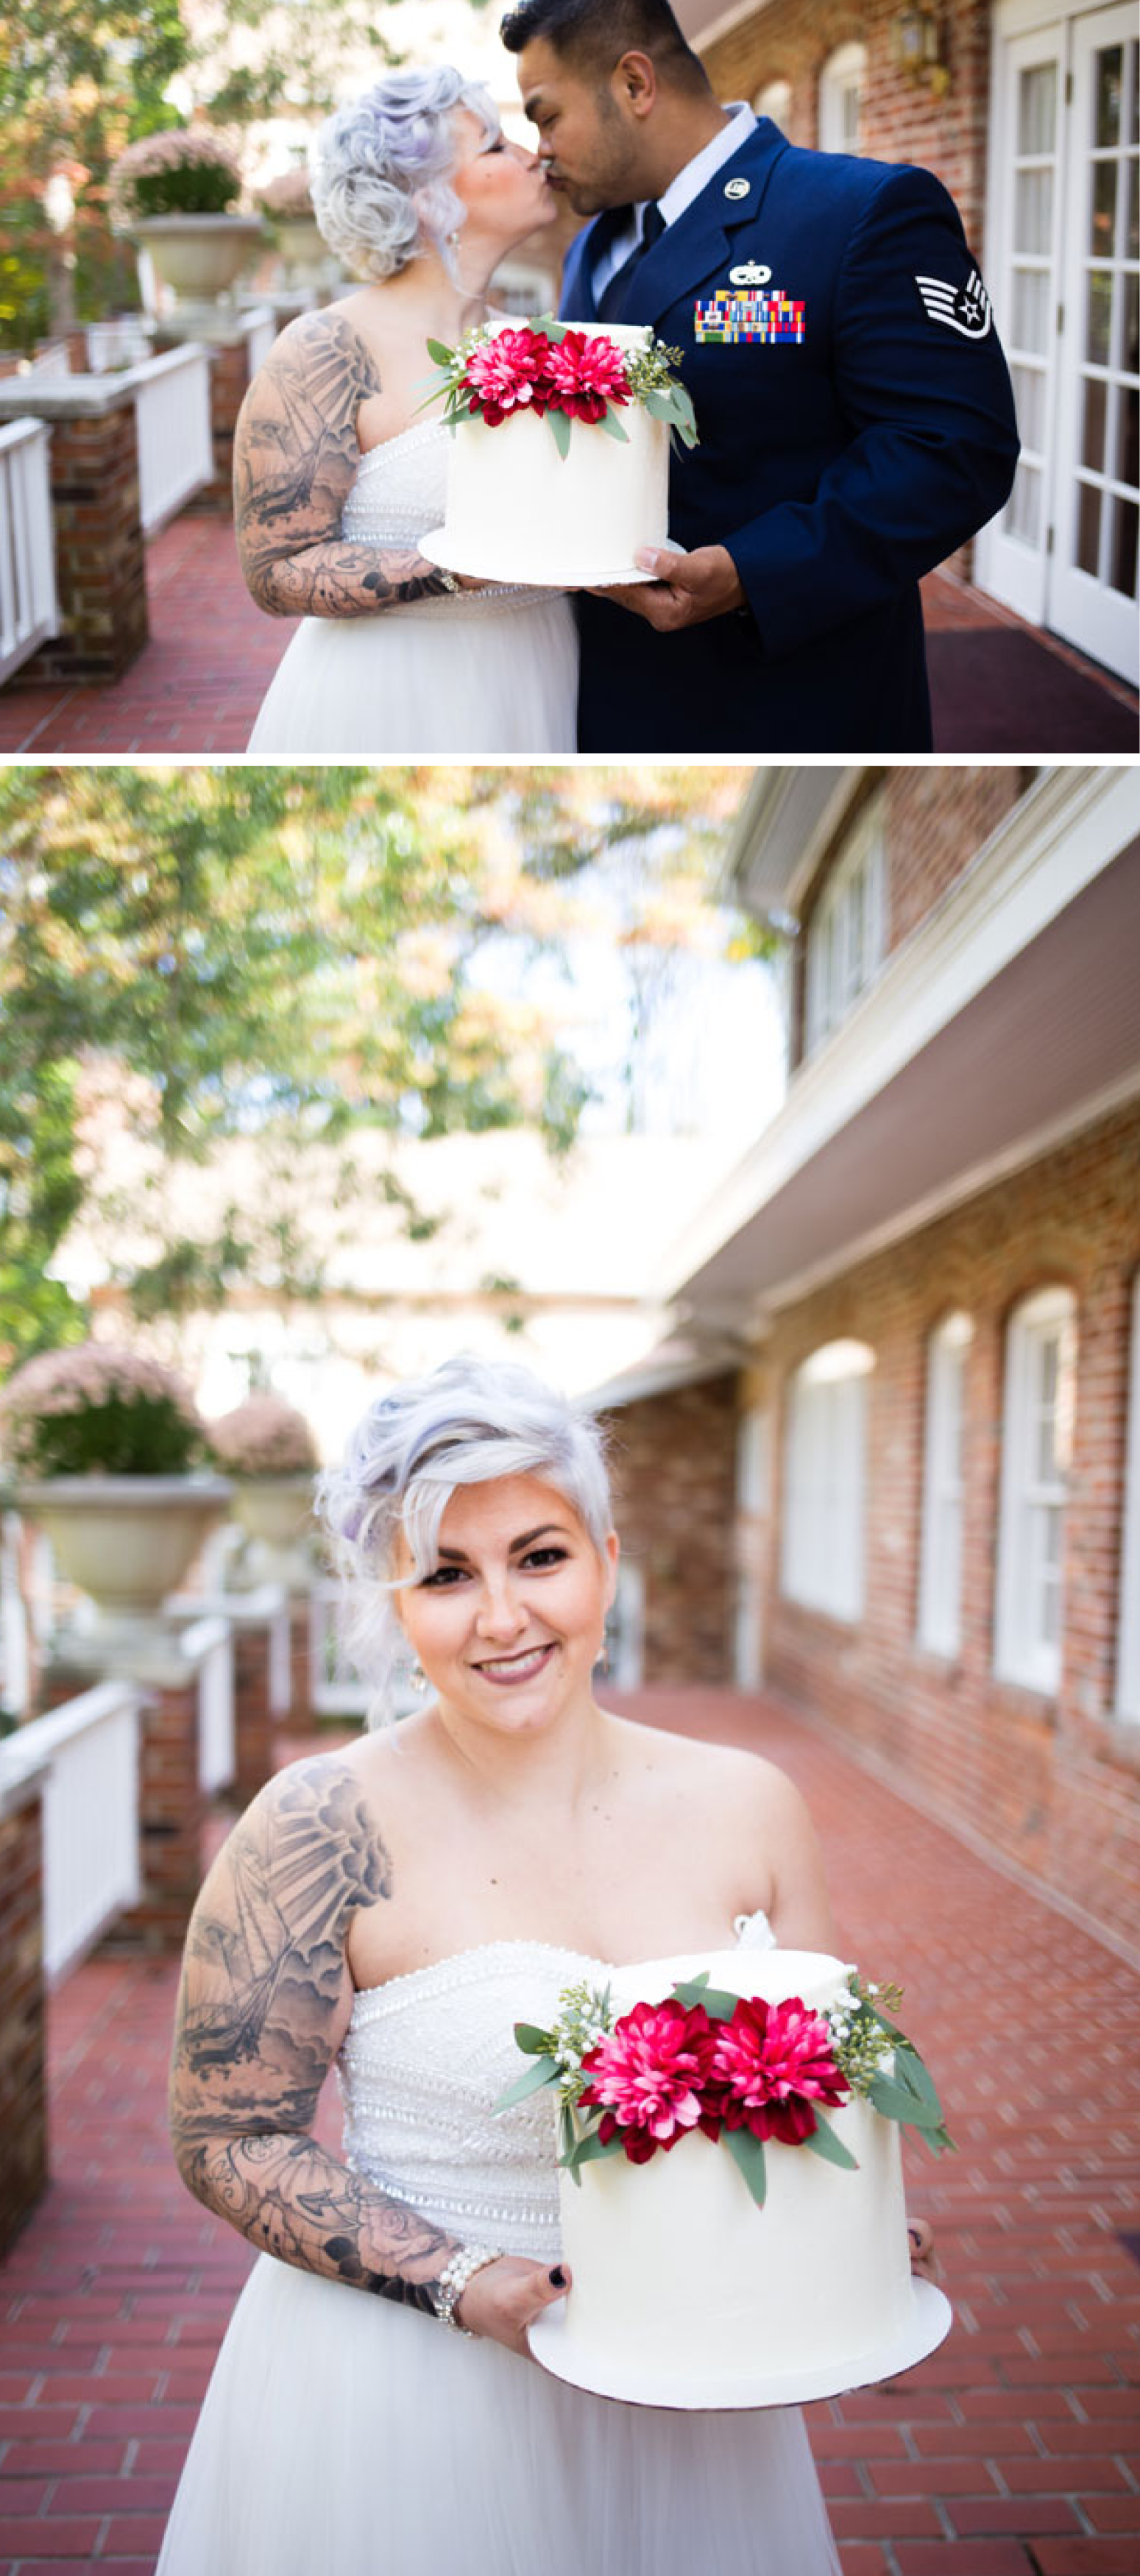 Raspberry-and-Gold-Vow-Renewal_Styled-Shoot-DC-Wedding2.jpg